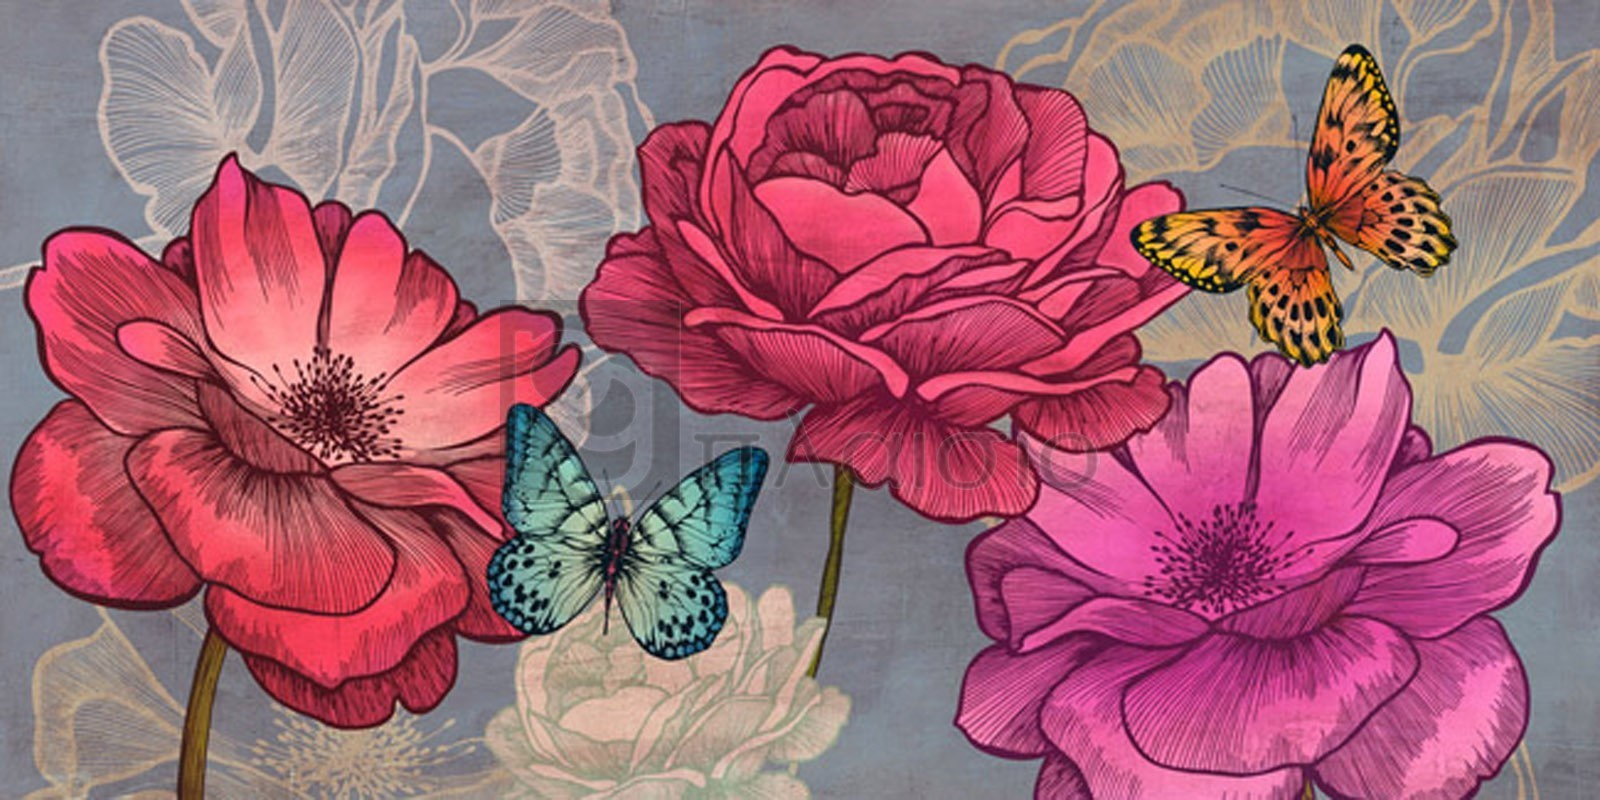 Eve C. Grant - Roses and Butterflies (Ash)